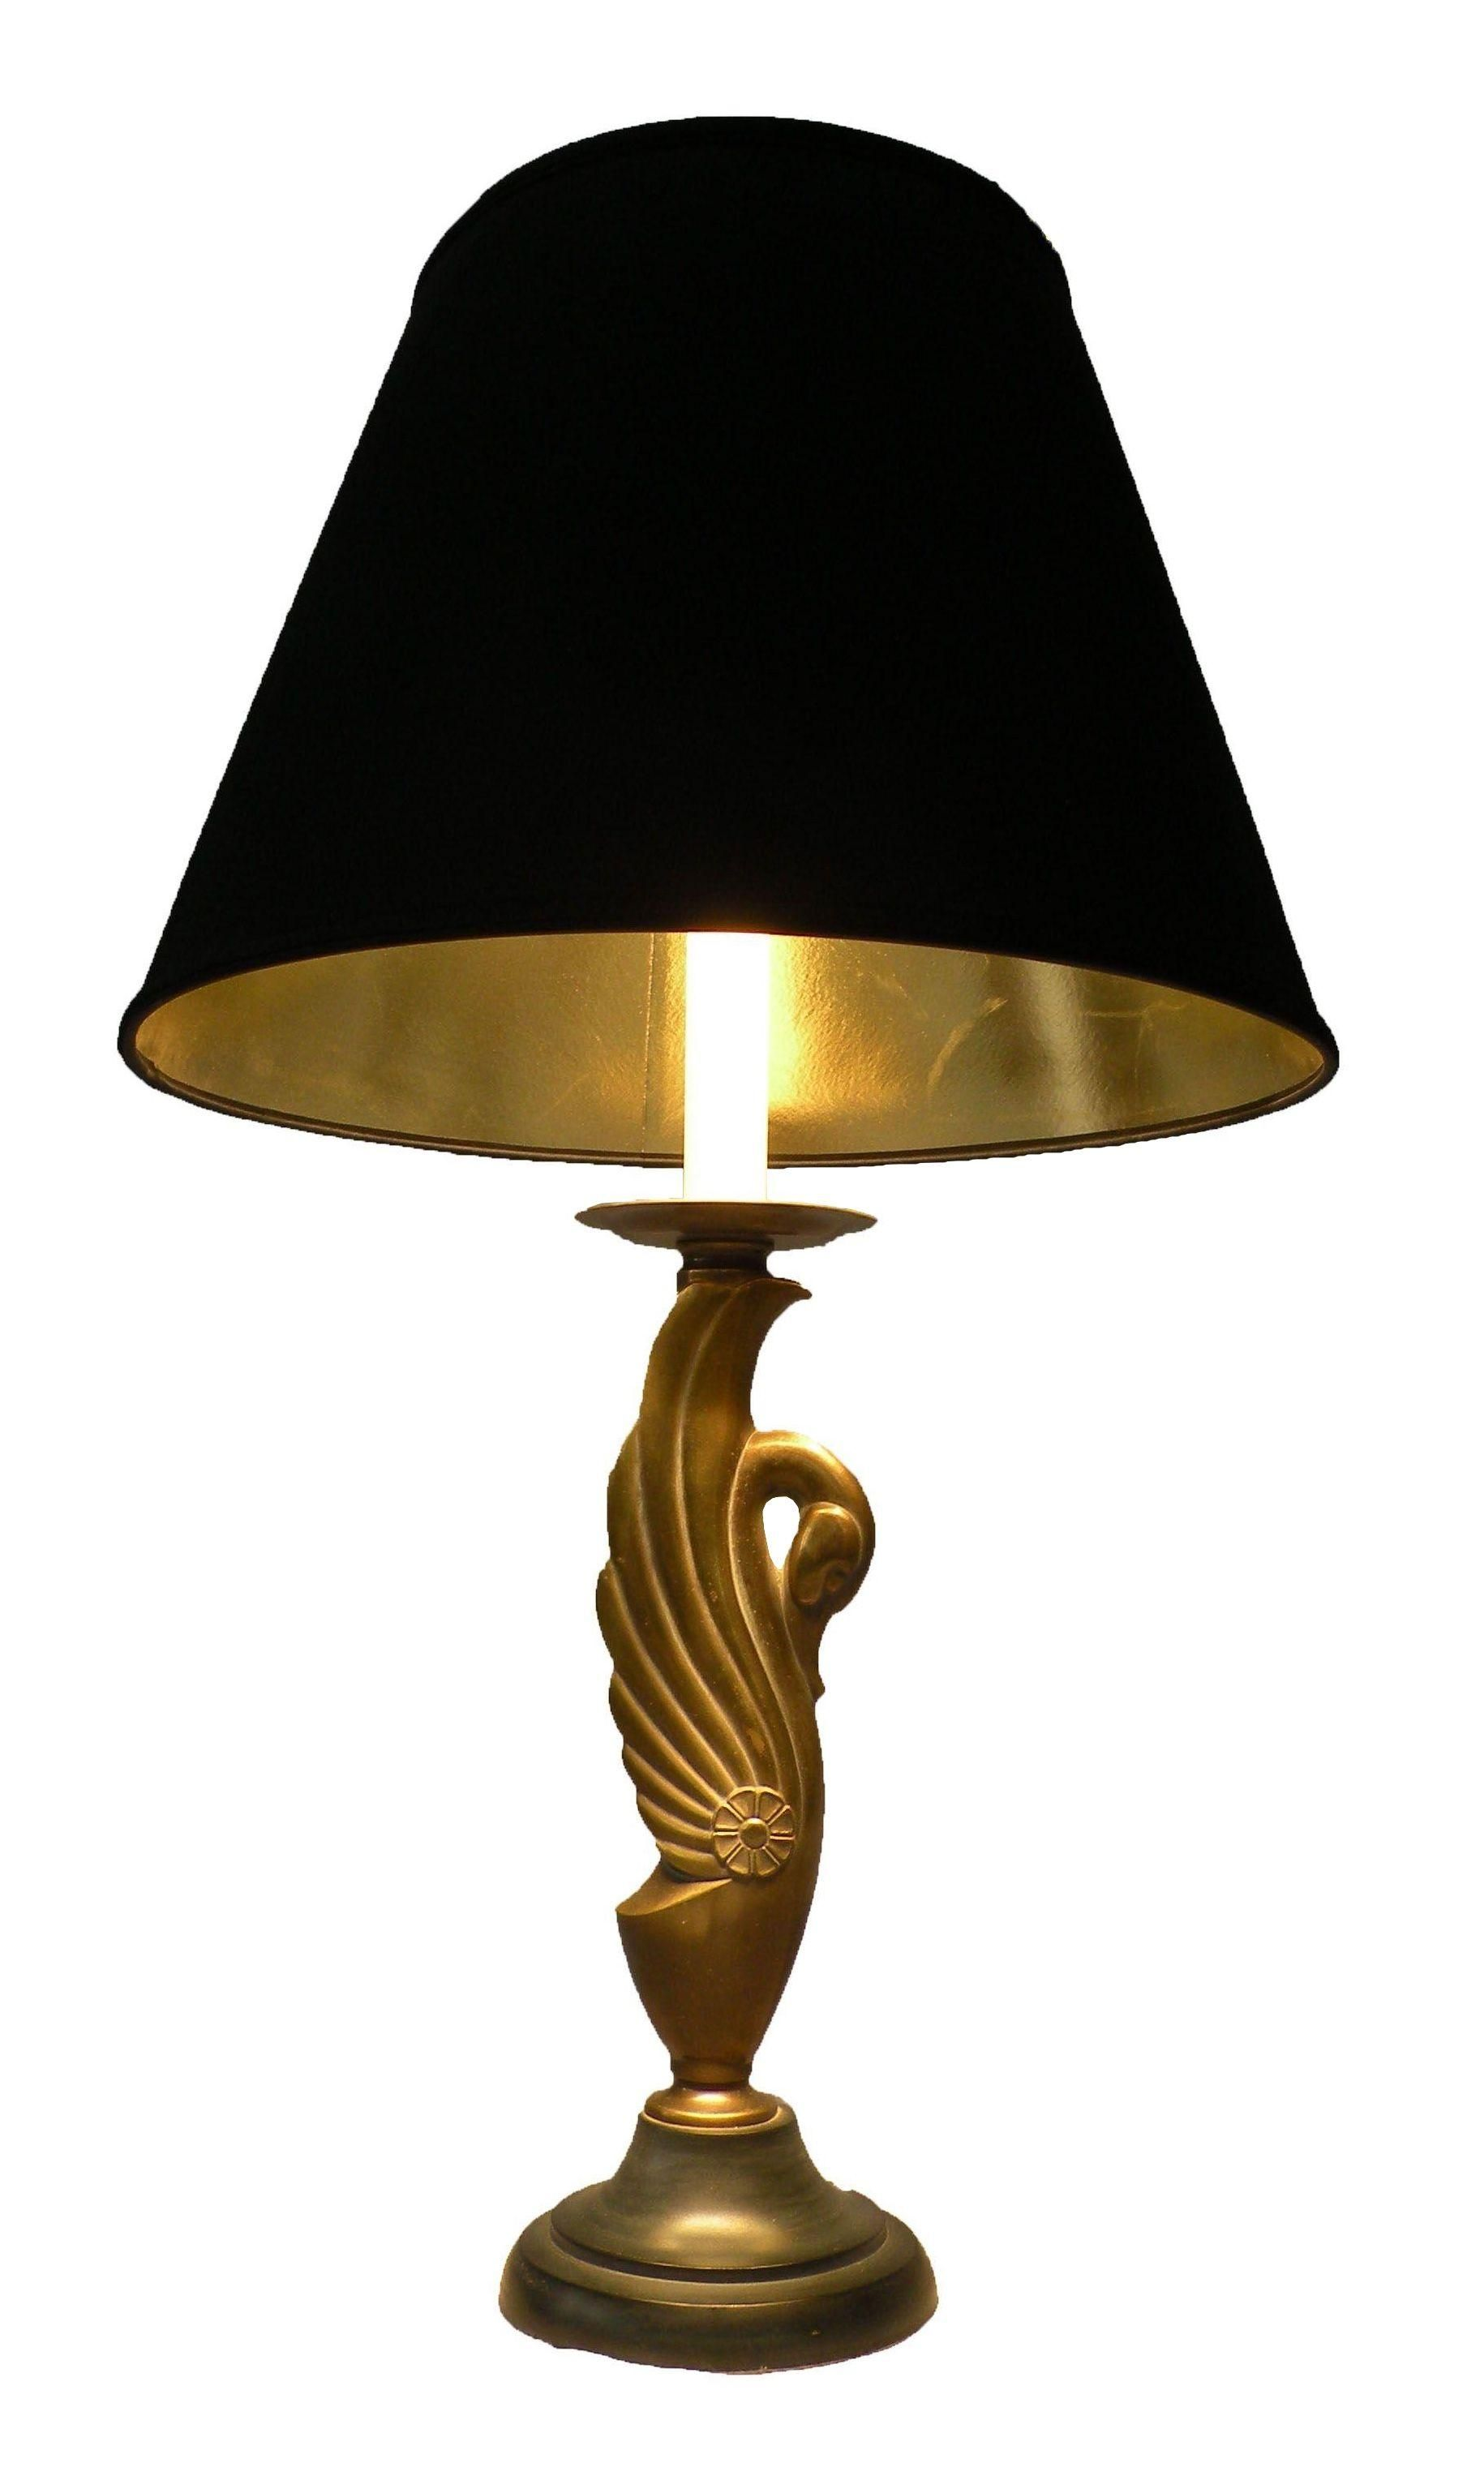 Elegant Br Swan Lamp With Black Gold Lined Shade Good Vintage Condition Works Great Some Mild Tarnishing Near The Top And Light Wear To